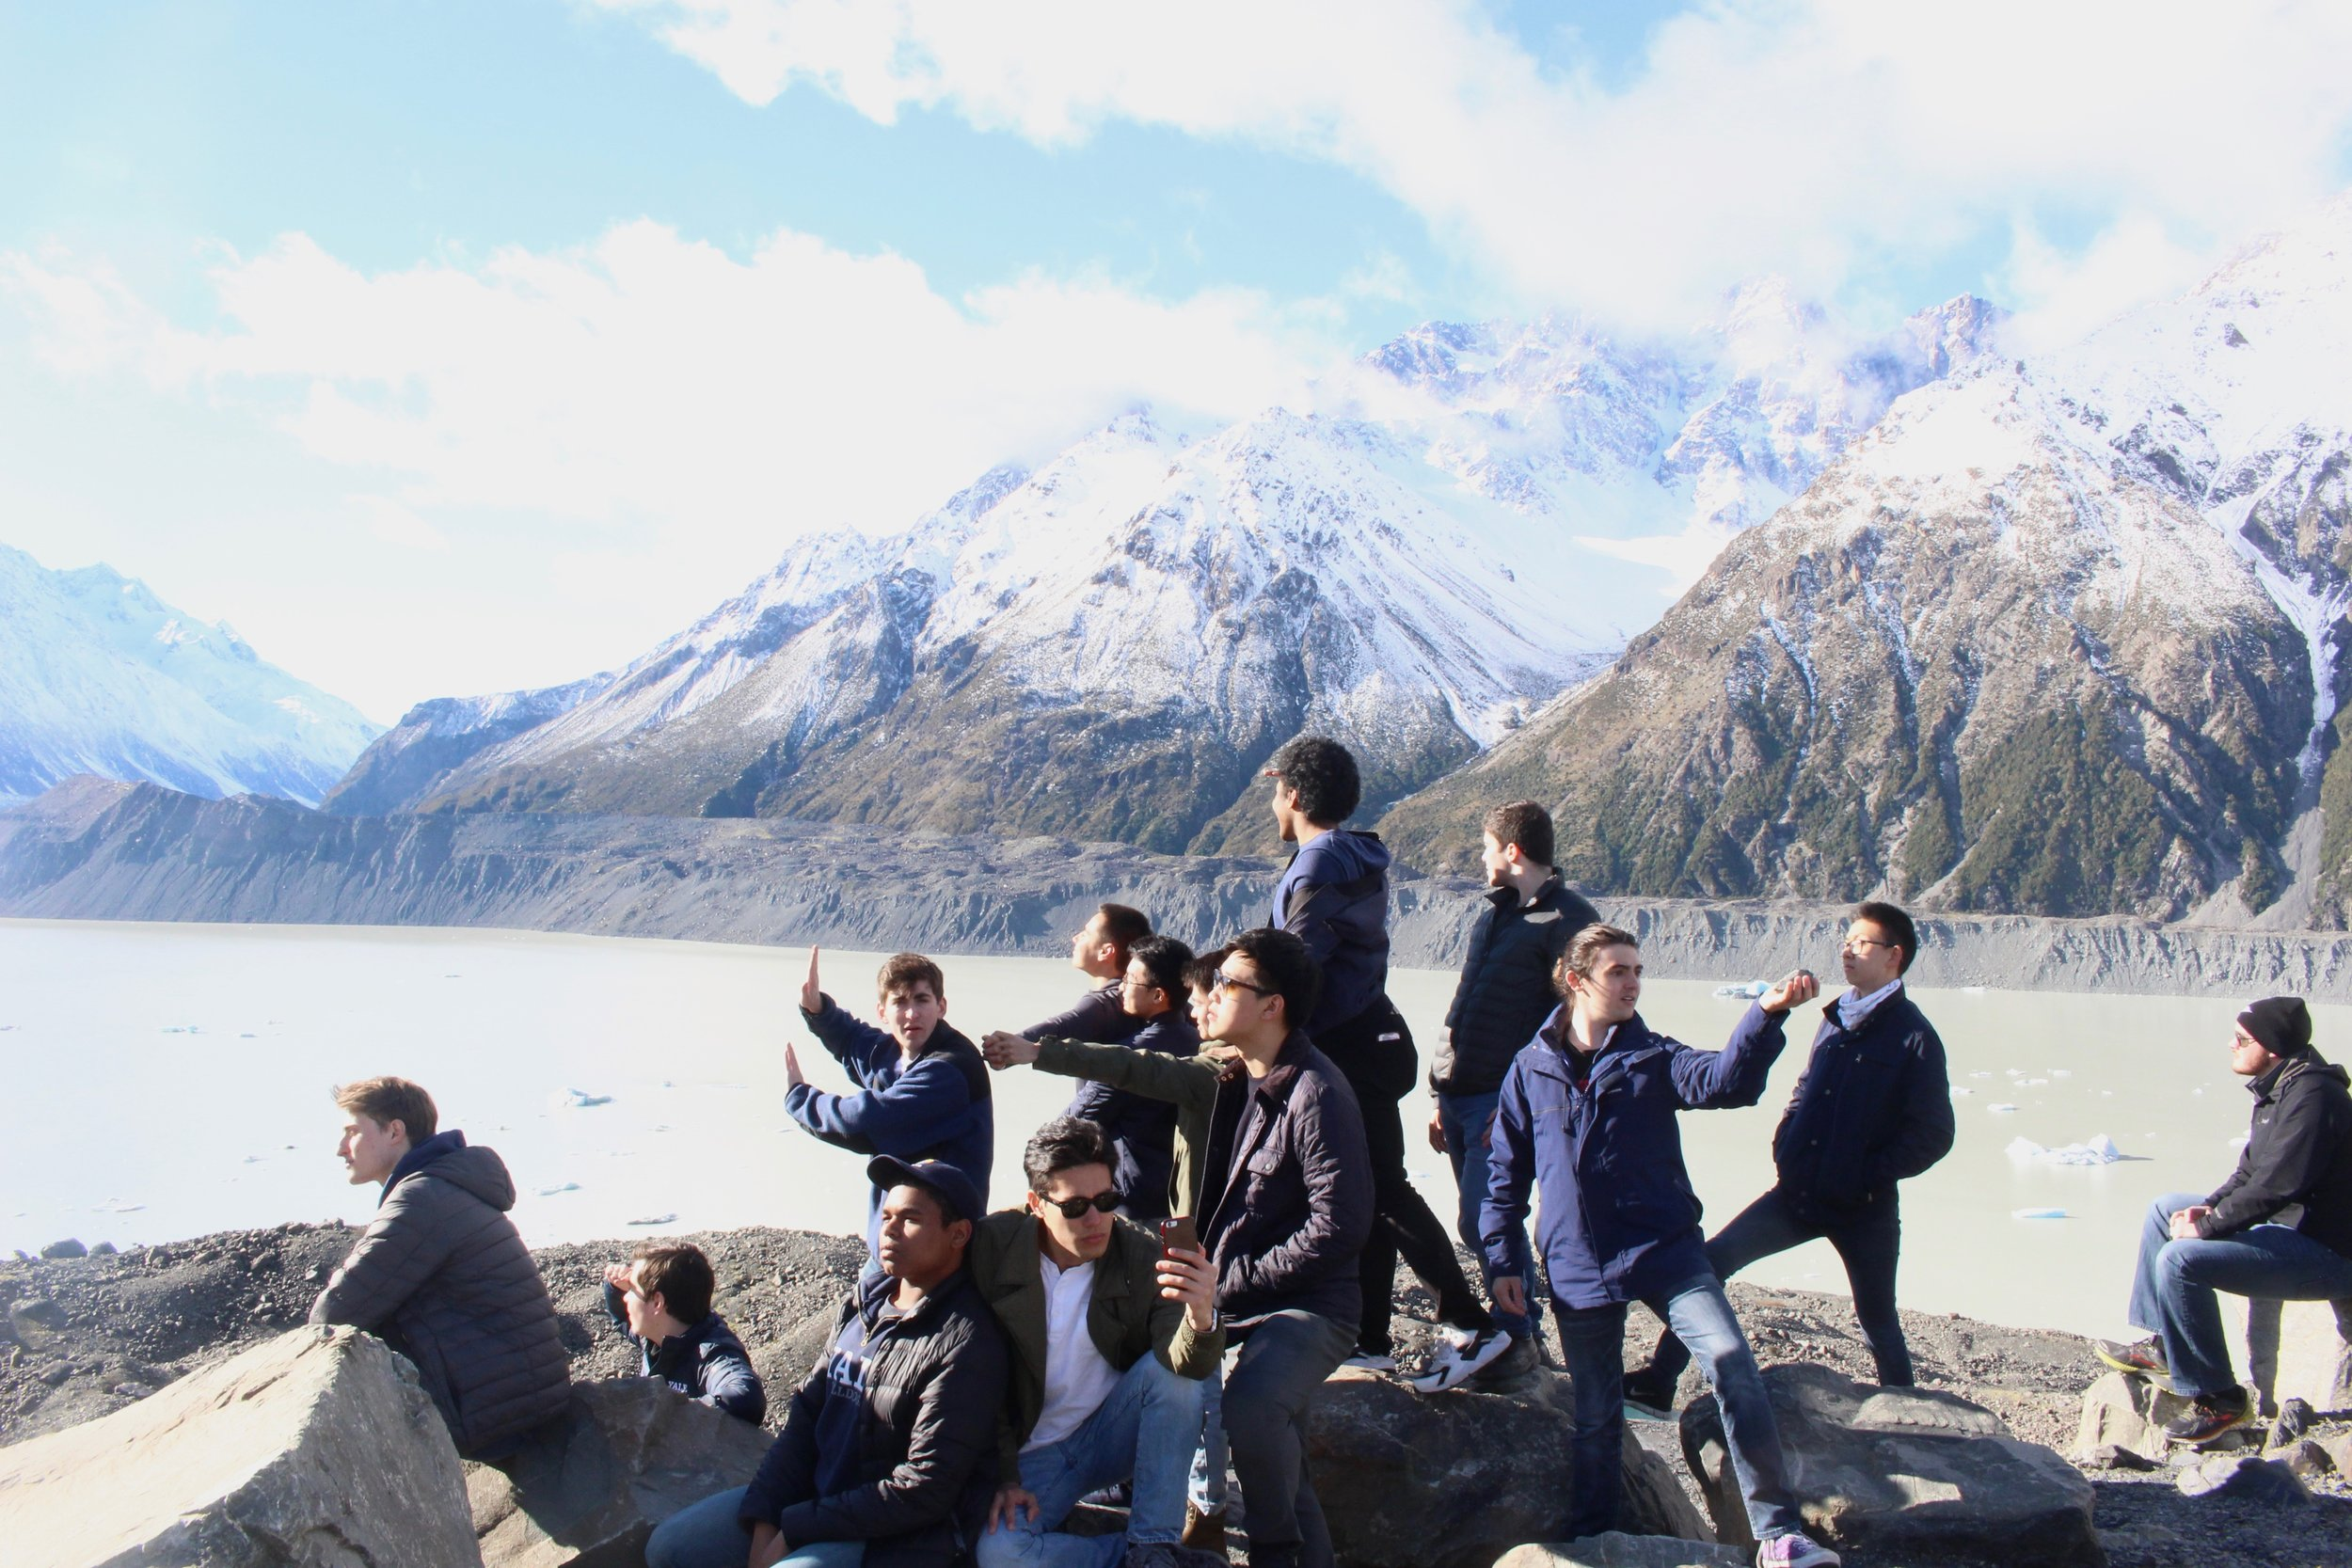 The Cats striking poses on a hike in New Zealand, Summer Tour 2018